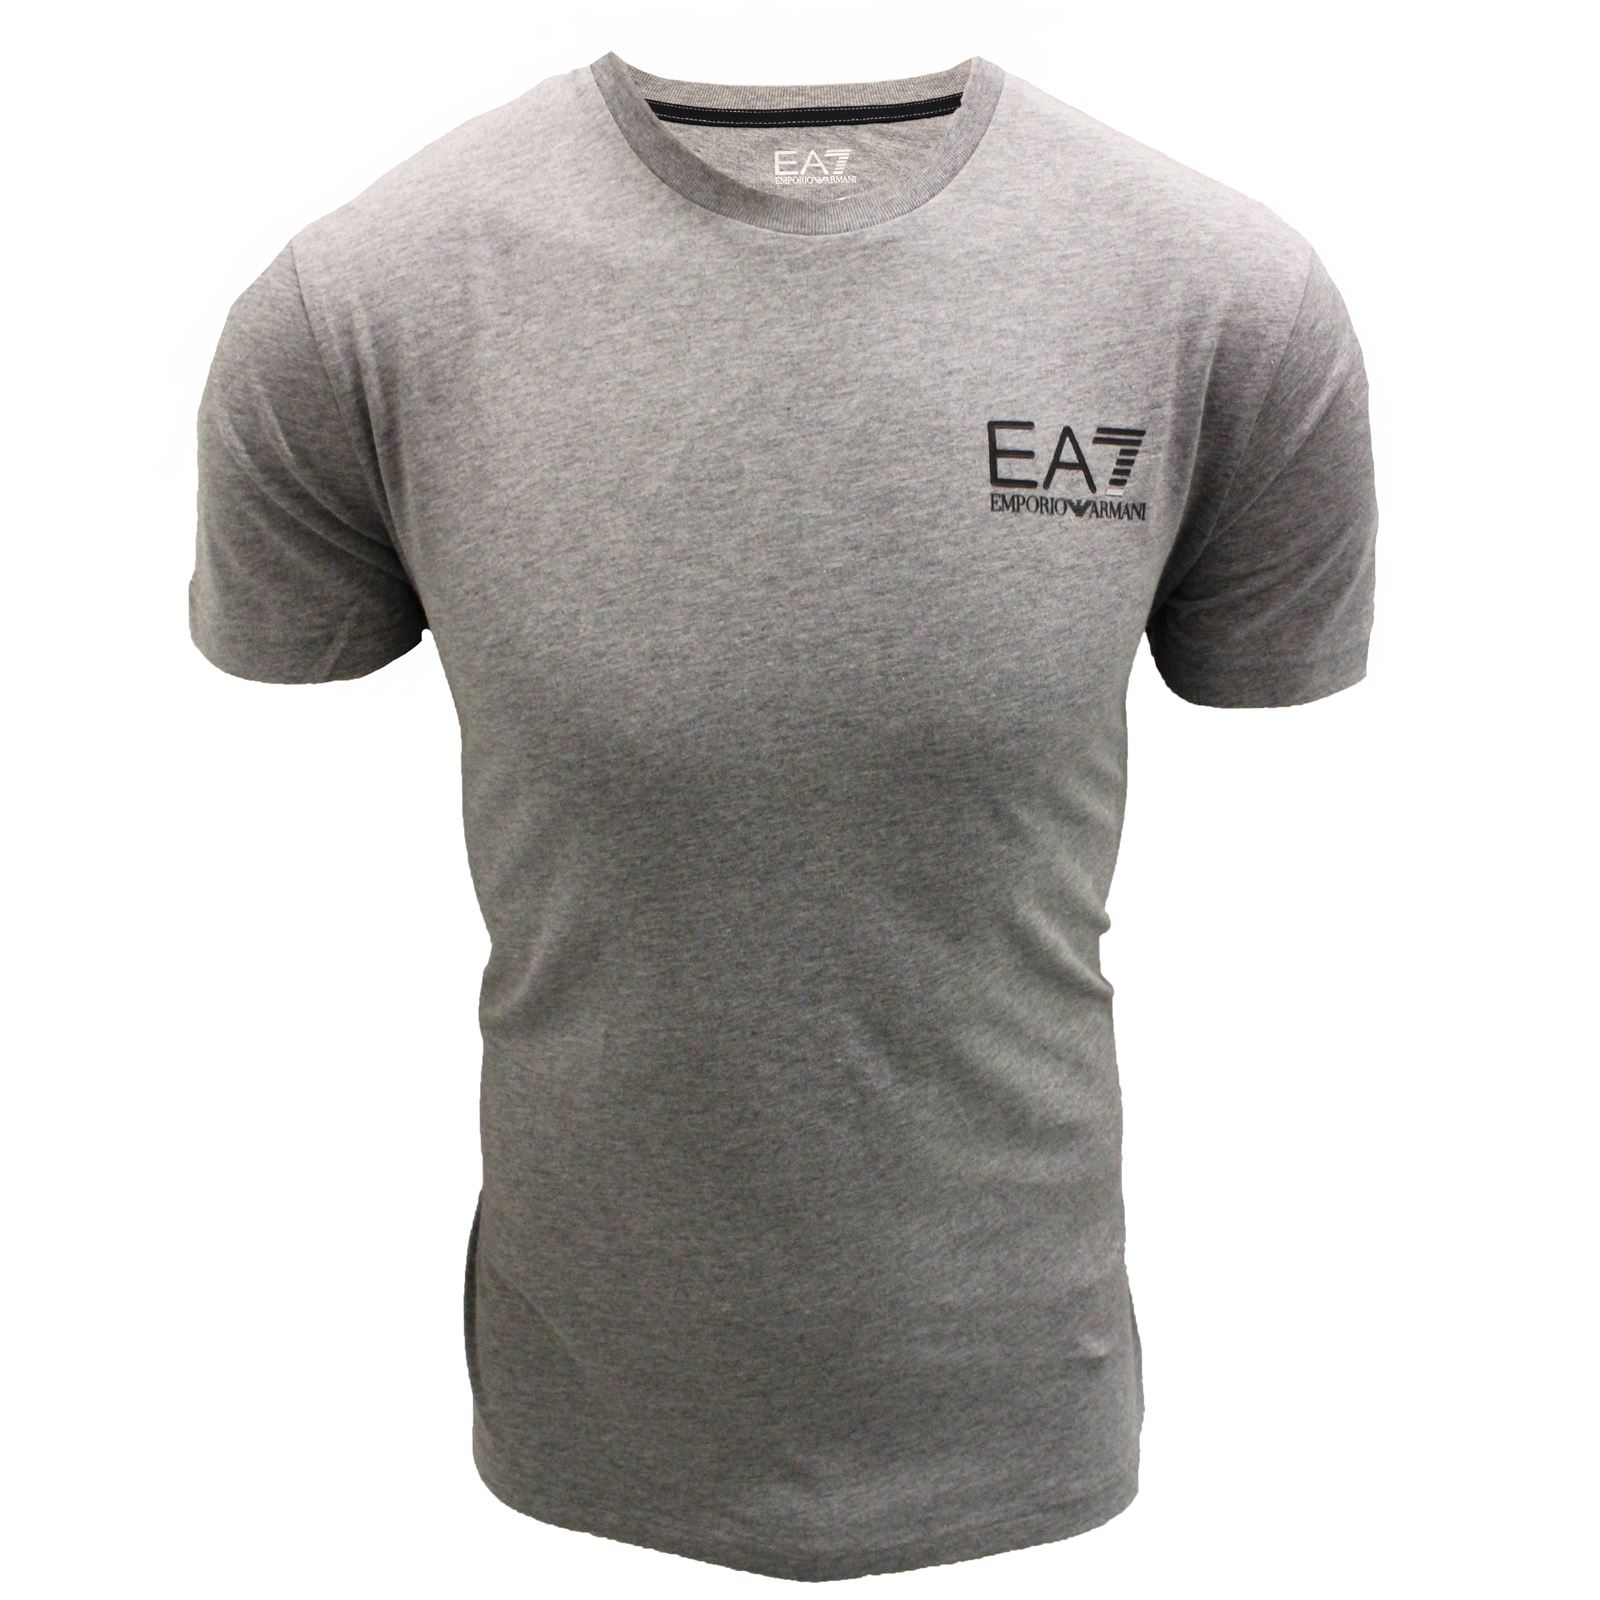 emporio armani t shirt ea7 mens grey crew neck top ebay. Black Bedroom Furniture Sets. Home Design Ideas